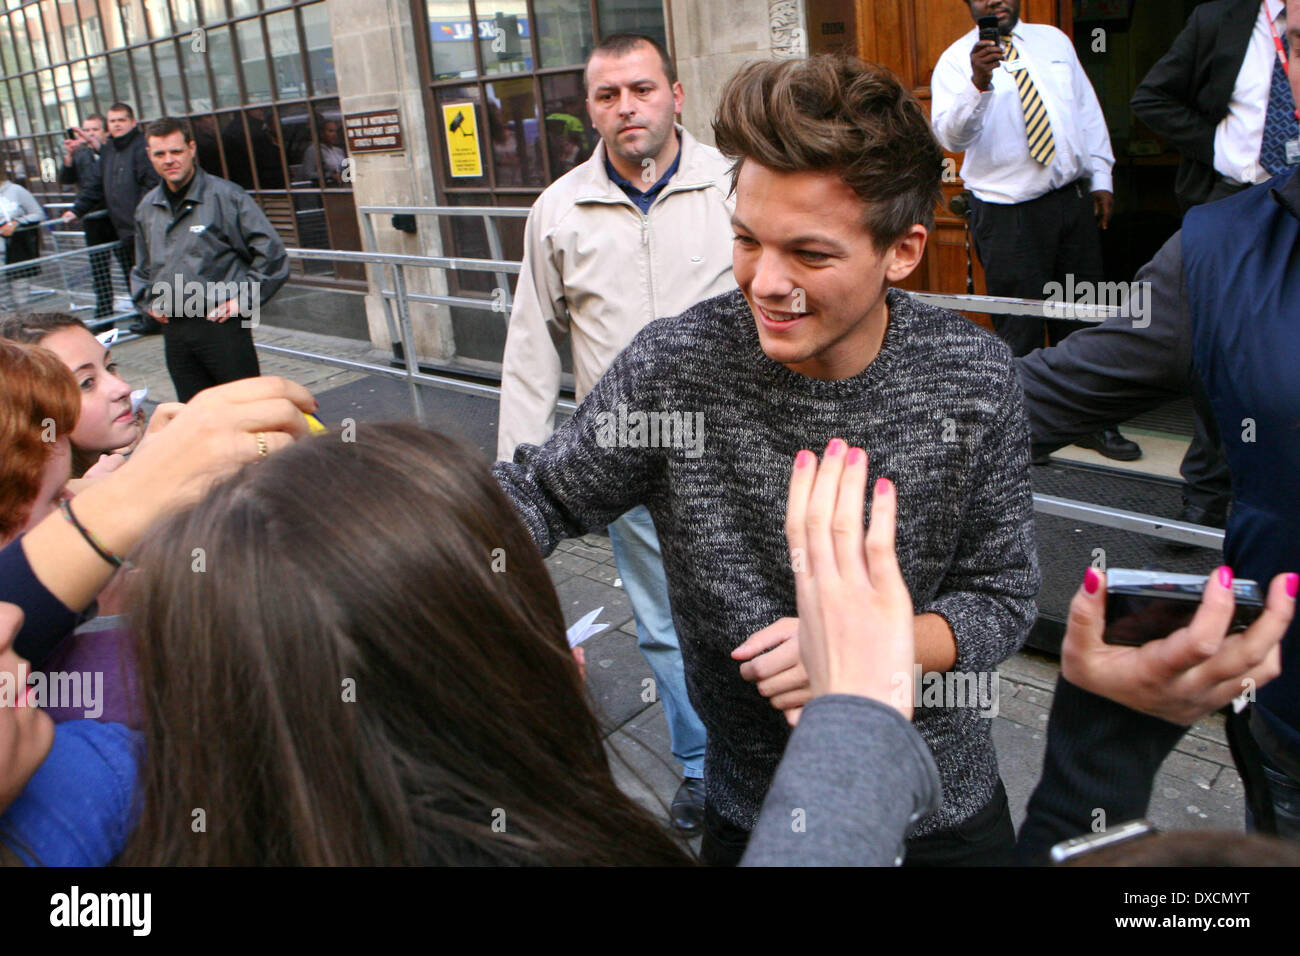 Louis Tomlinson One Direction arriving at BBC Radio 1 London